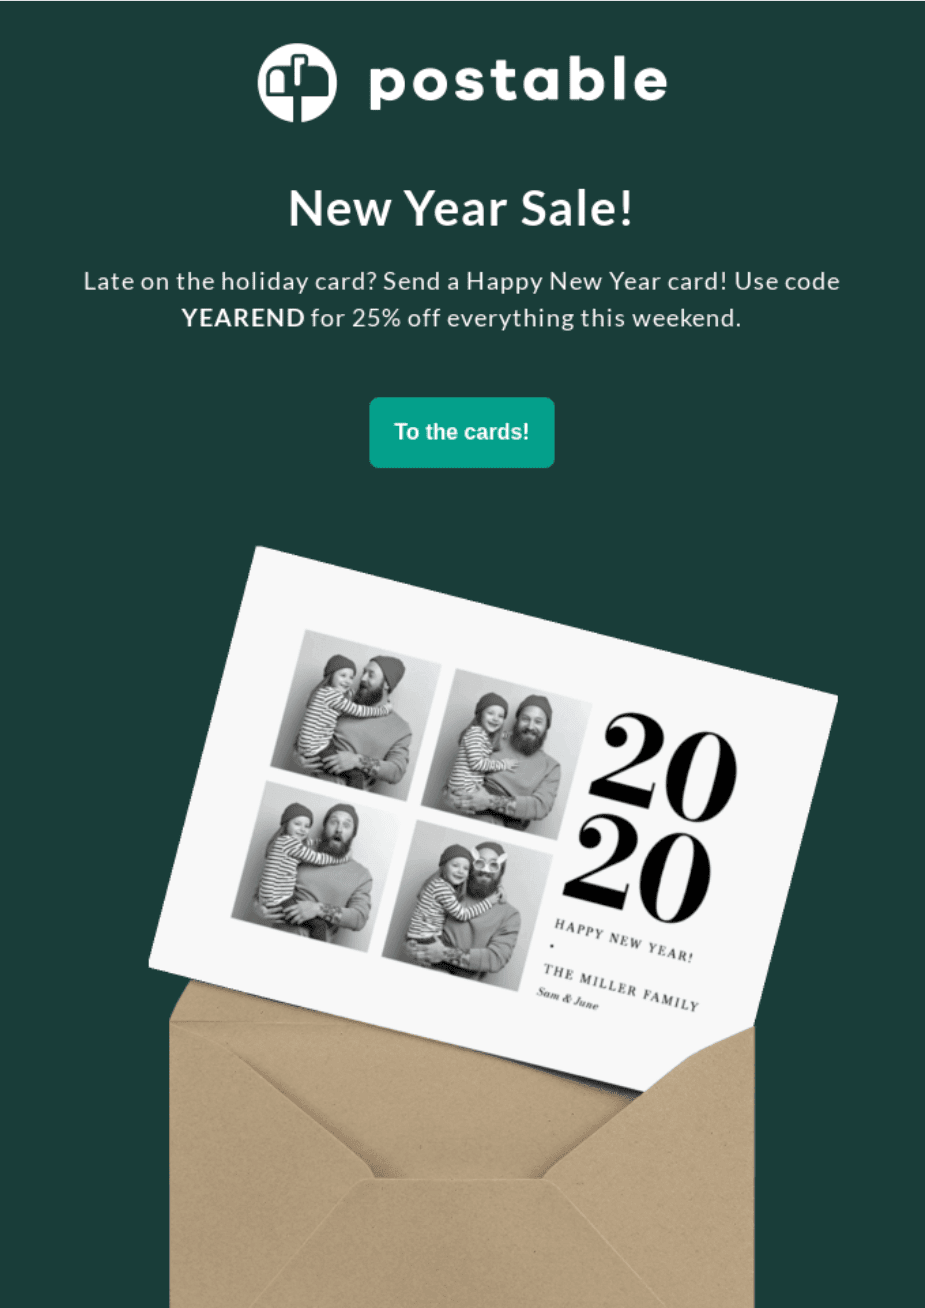 New Year Coupons in Emails